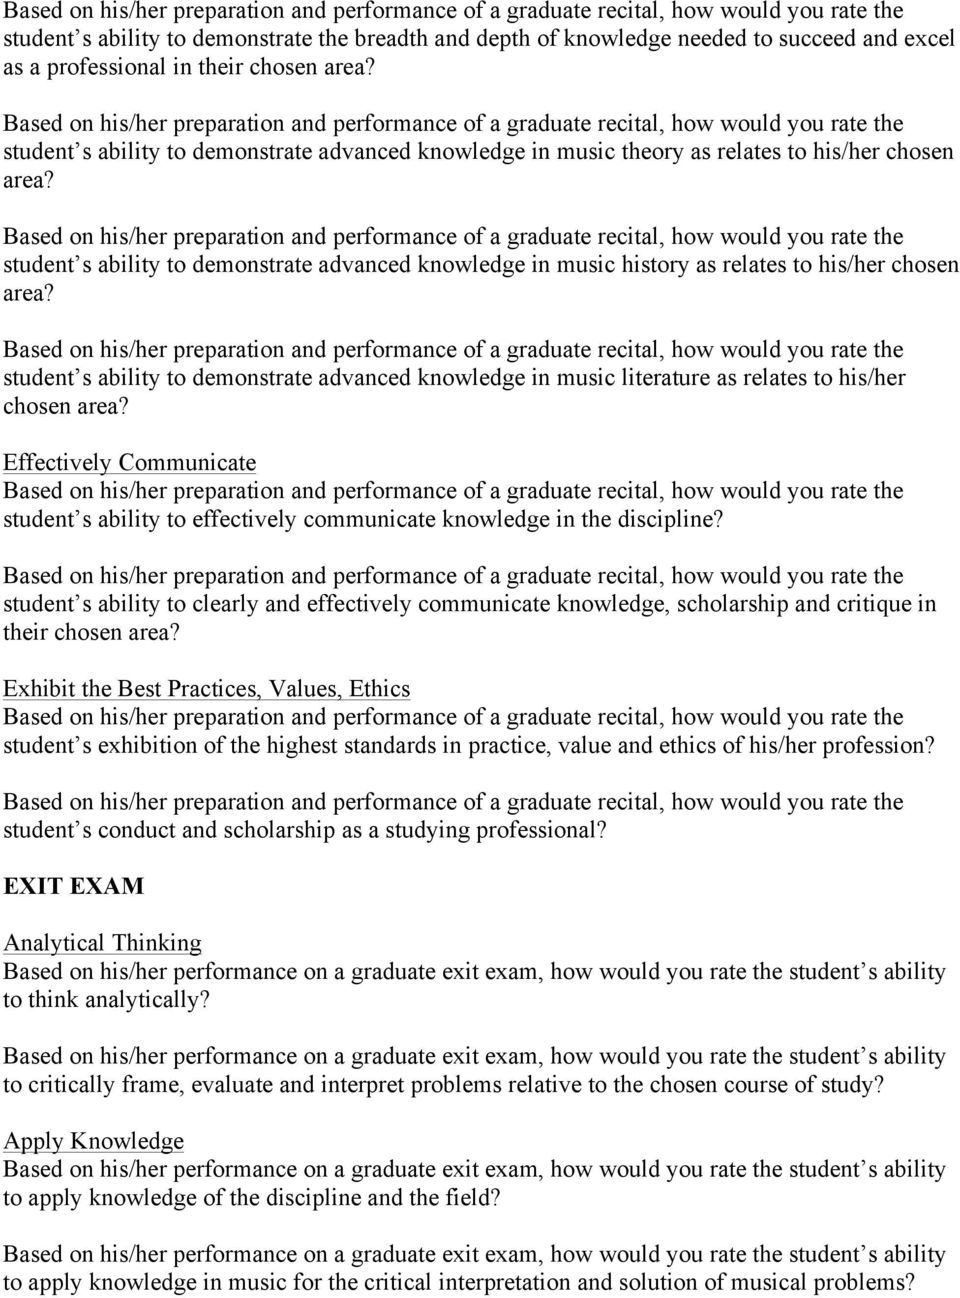 Based on his/her preparation and performance of a graduate recital, how would you rate the student s ability to demonstrate advanced knowledge in music theory as relates to his/her chosen area?